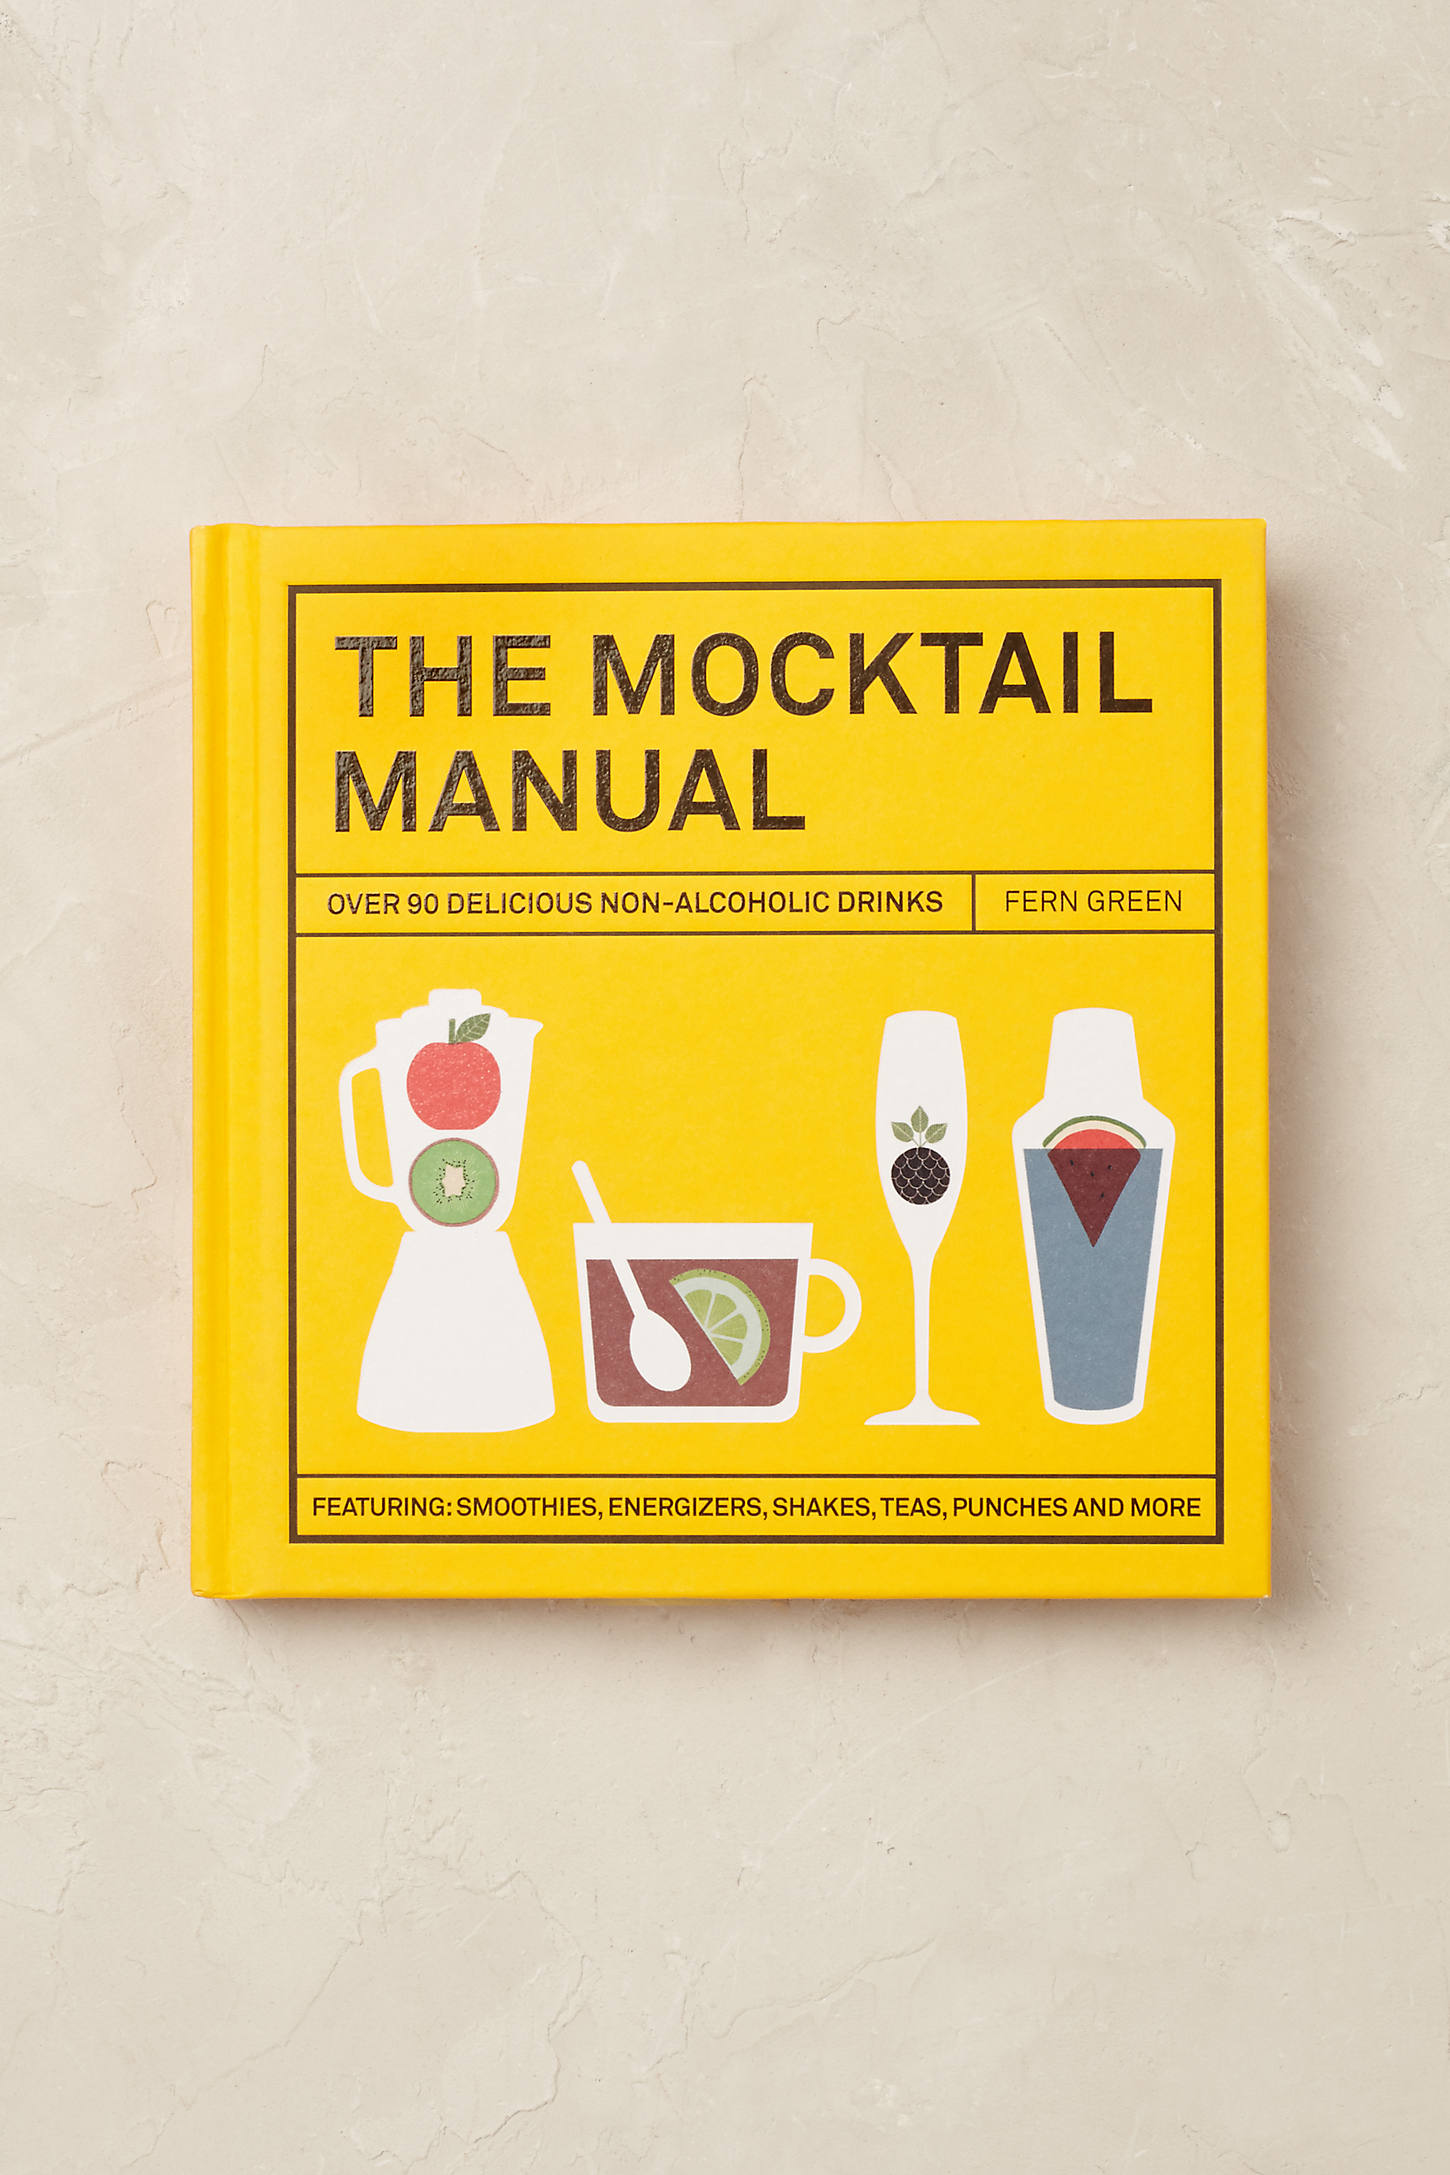 The Mocktail Manual